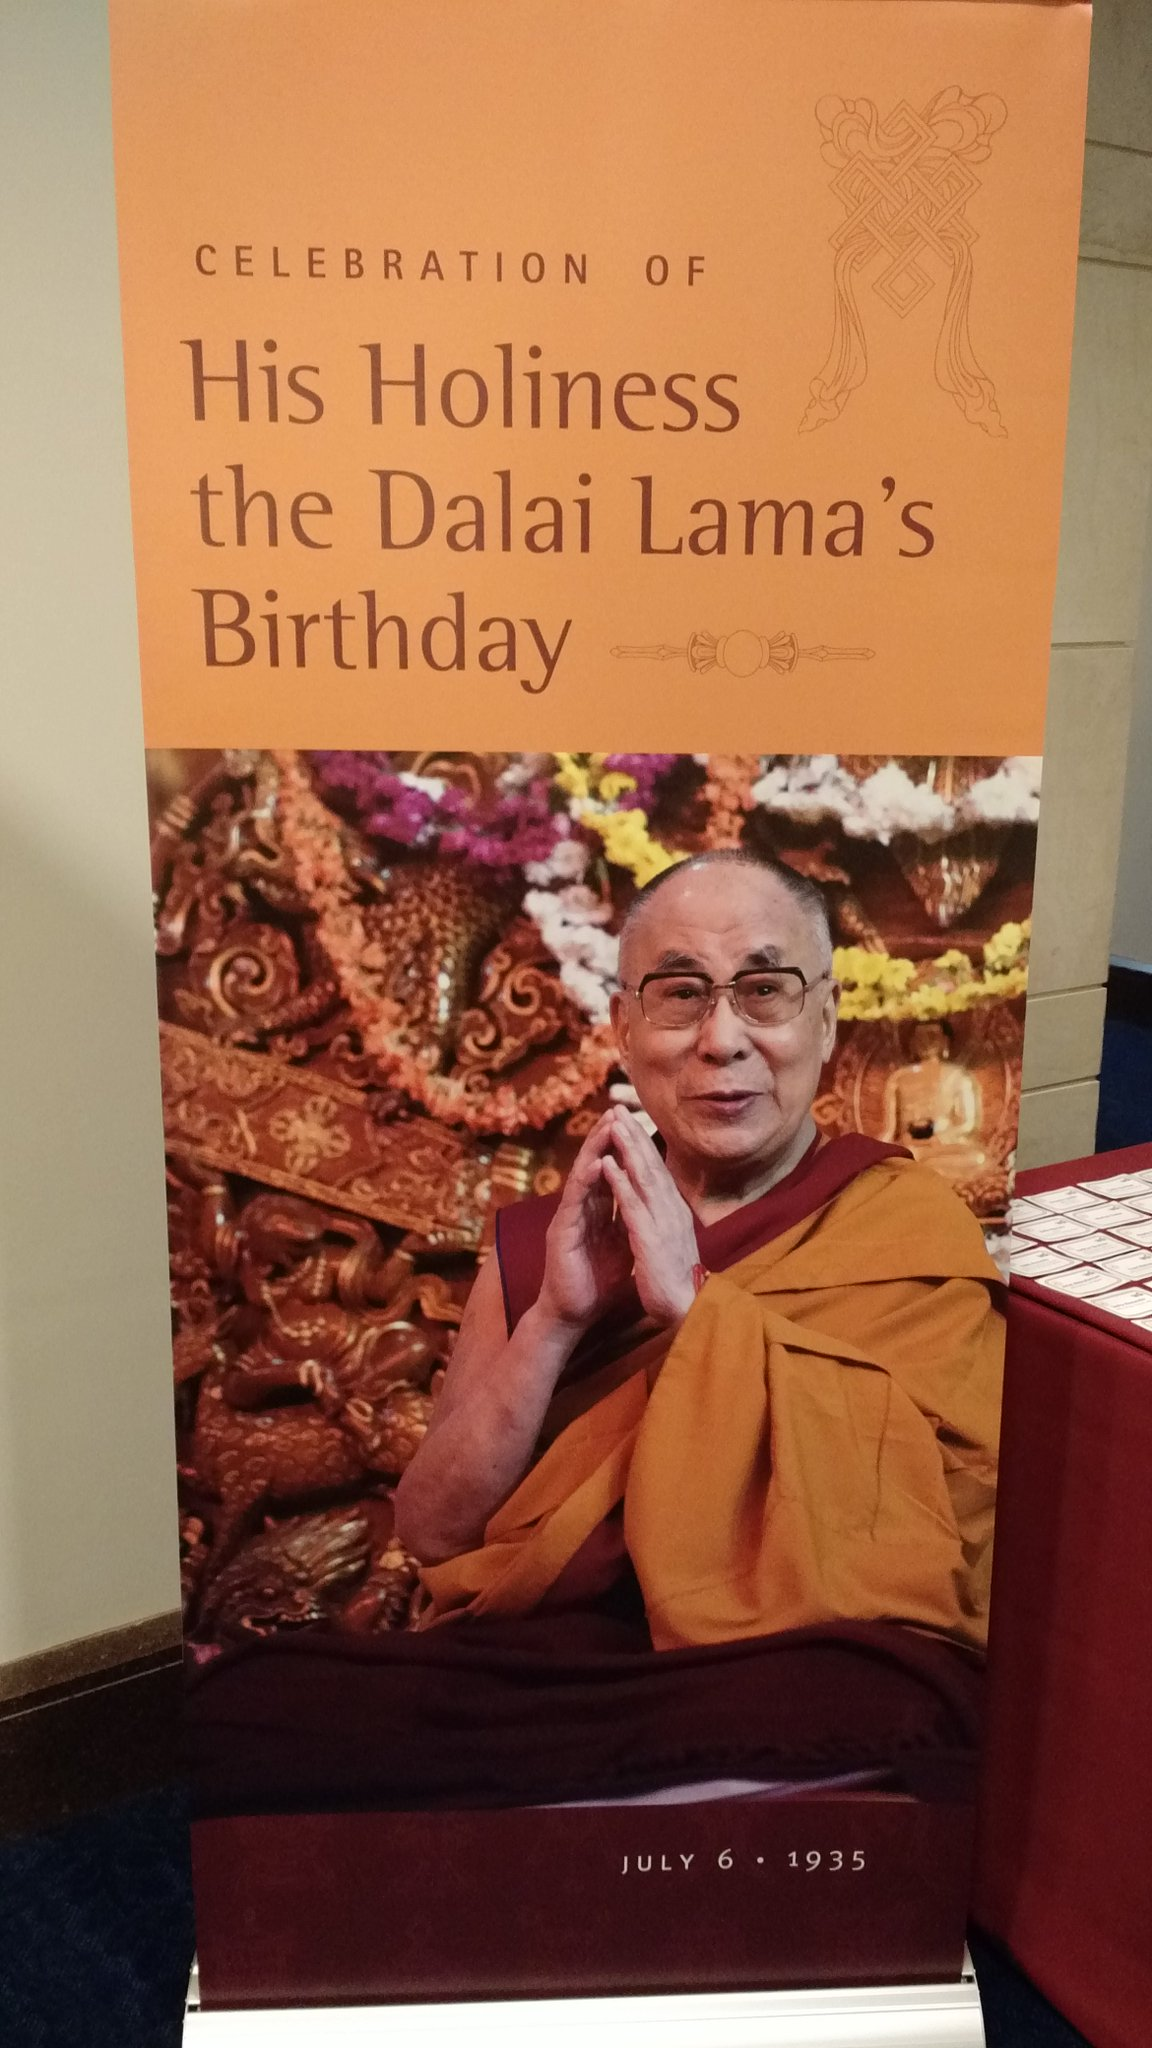 Starting soon: A celebration of the #DalaiLama's birthday in the U.S. Congress https://t.co/NuSfxgALER